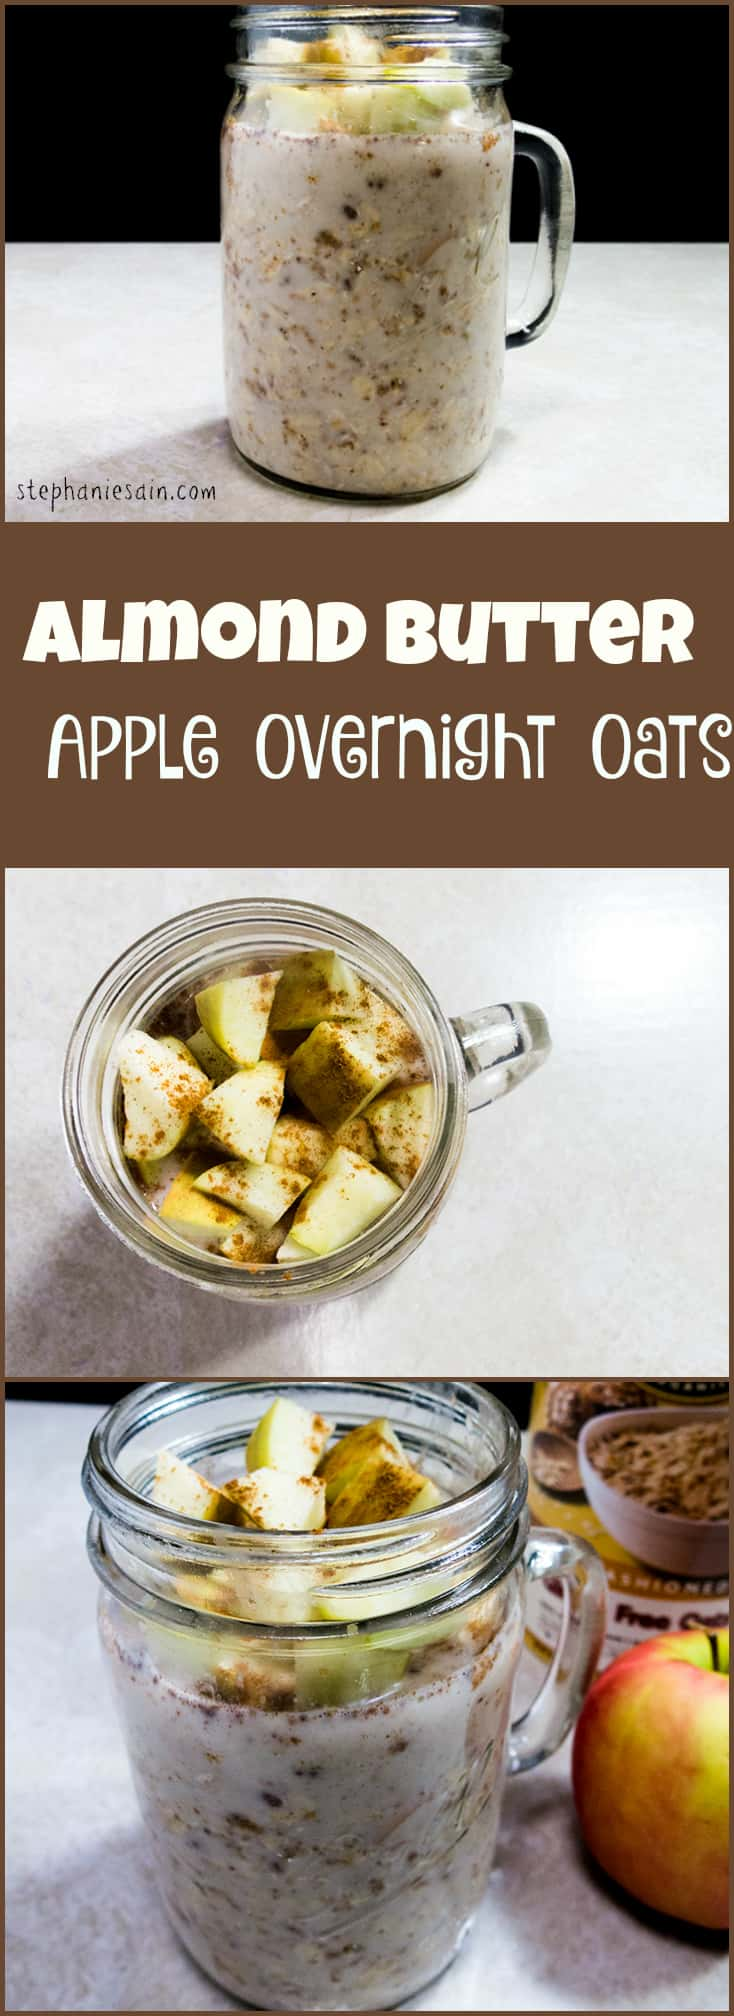 Almond Butter Apple Overnight Oats are a quick, tasty, healthy breakfast that you can just grab and go. Can customize to suit your tastes. Vegetarian, Vegan, and Gluten Free.